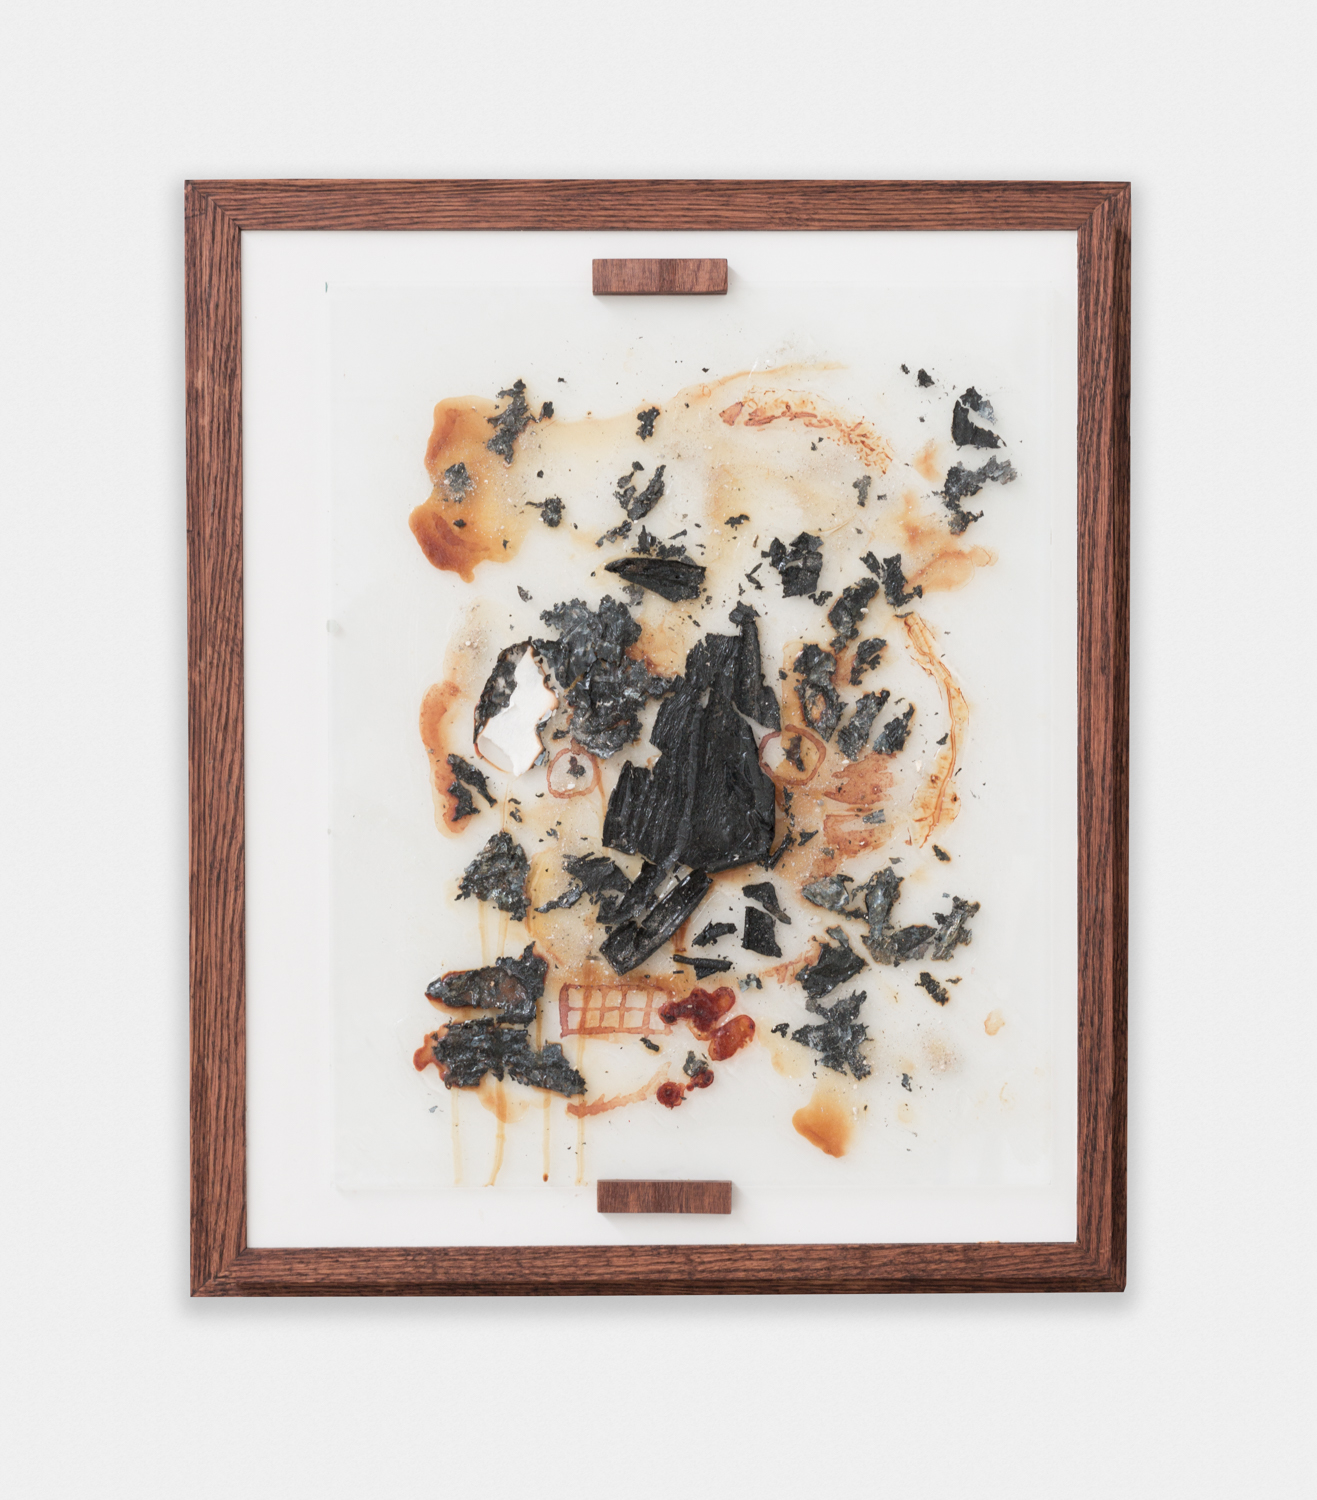 Shane Huffman  Asif (Metamodern Prometheus) [Witches wombs and trips to the moon], for Pa and J.K.  2012-2015 Menstrual blood, semen, human ashes, burned photographs of the lunar surface, and self-leveling gel medium 25 ⅓h x 21 ½w x 4 ⅝d in SH008